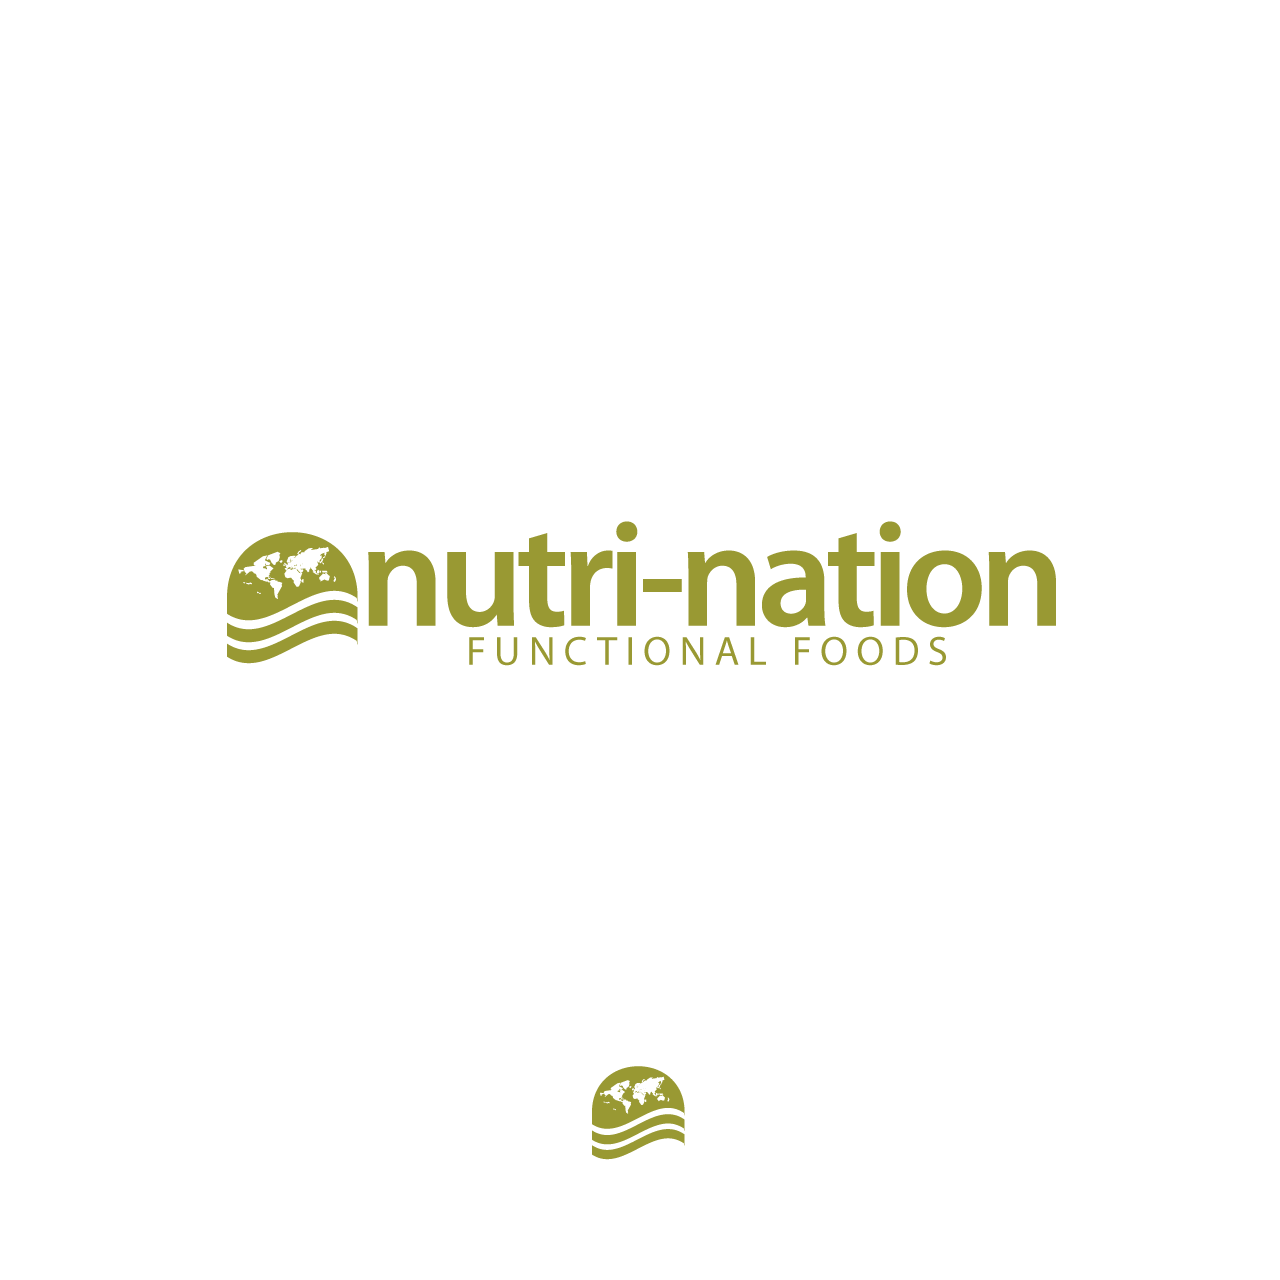 Logo Design by umxca - Entry No. 157 in the Logo Design Contest Nutri-Nation Functional Foods Logo.